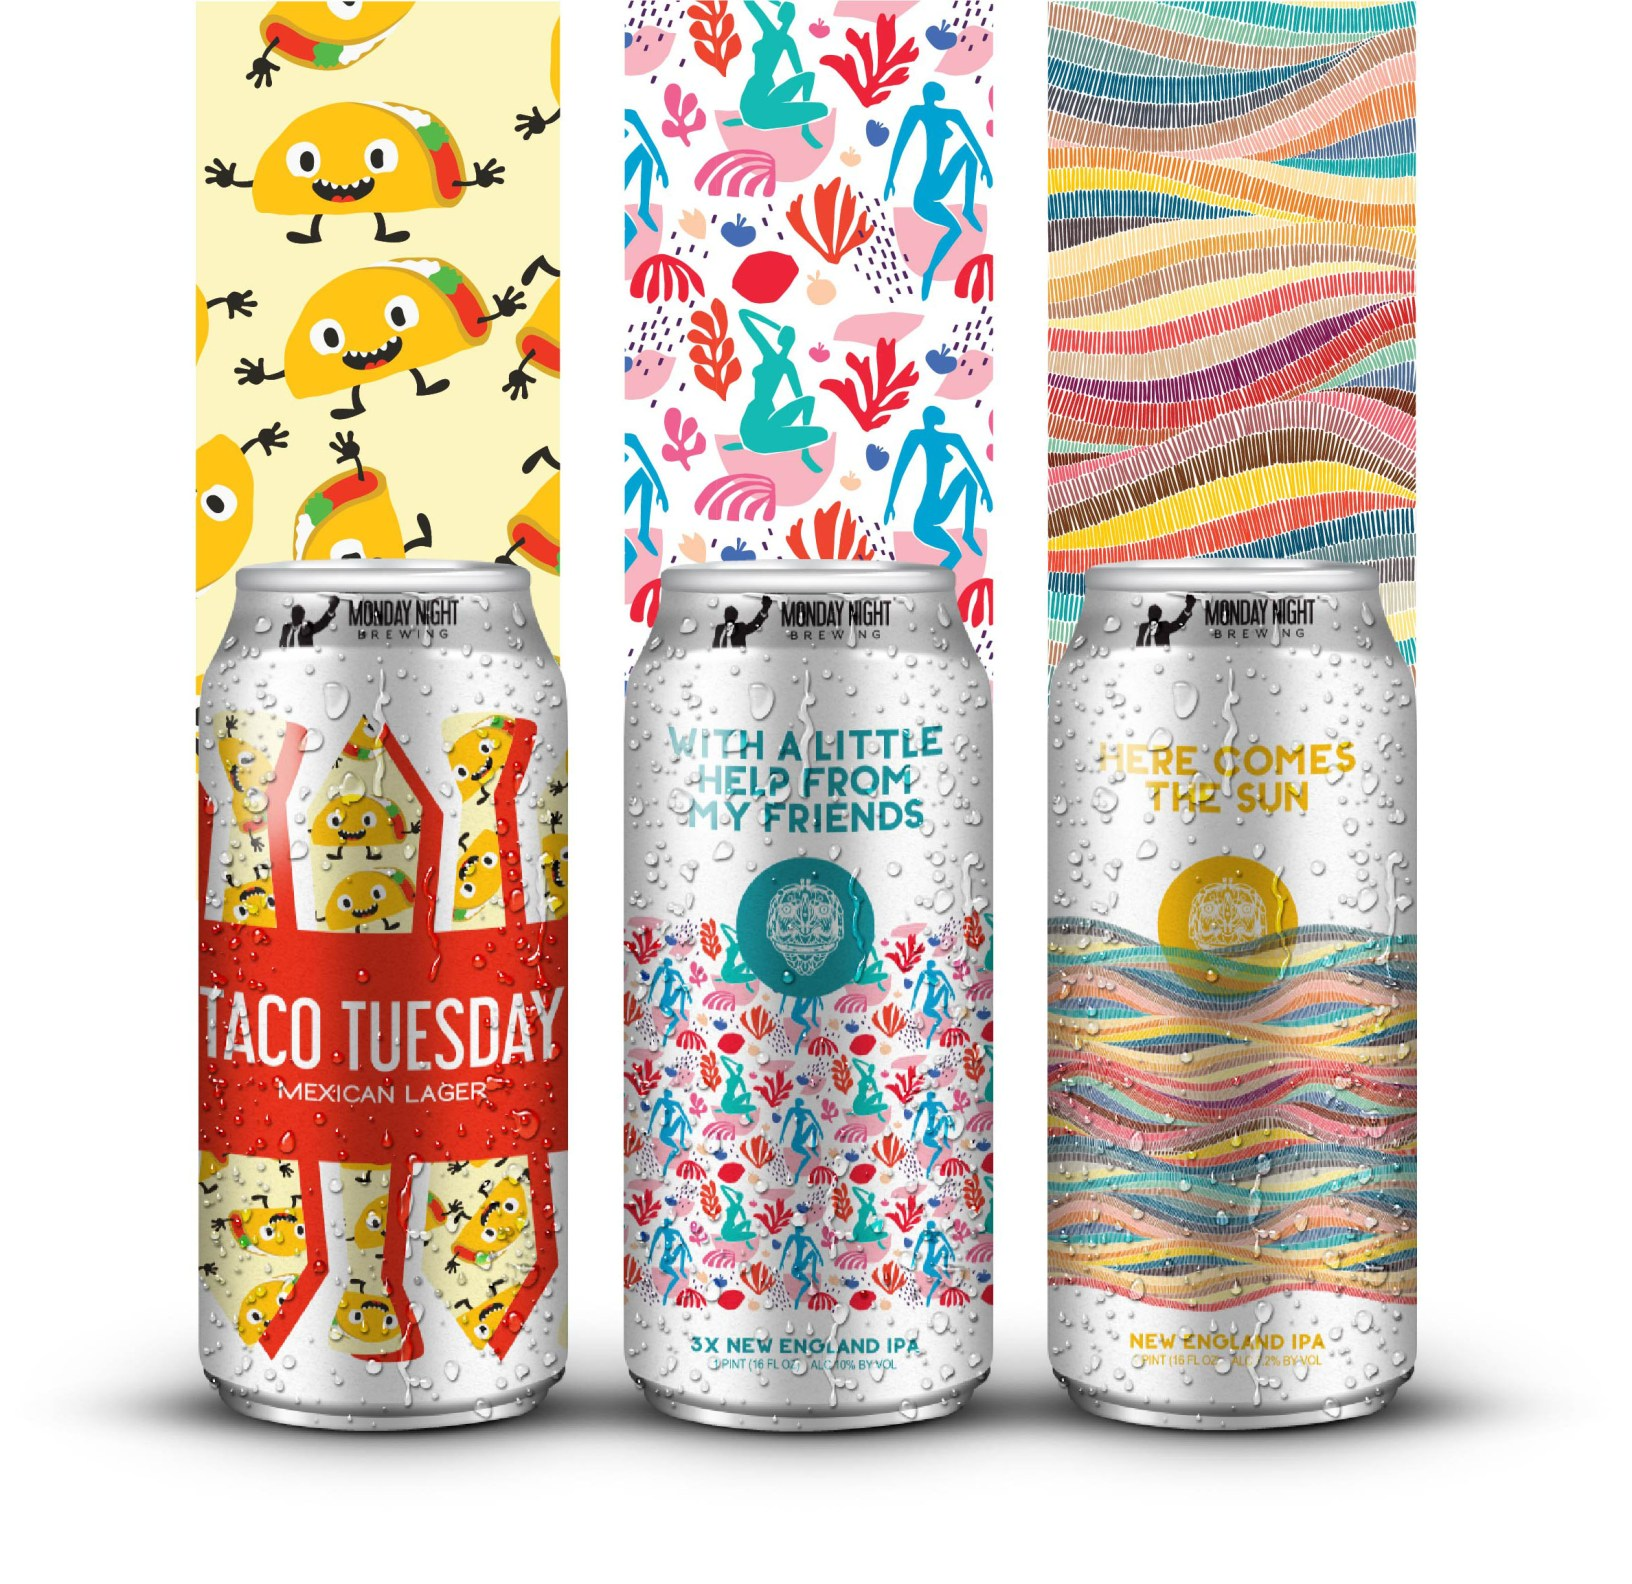 A Triple, Tropical Beer Release This Friday